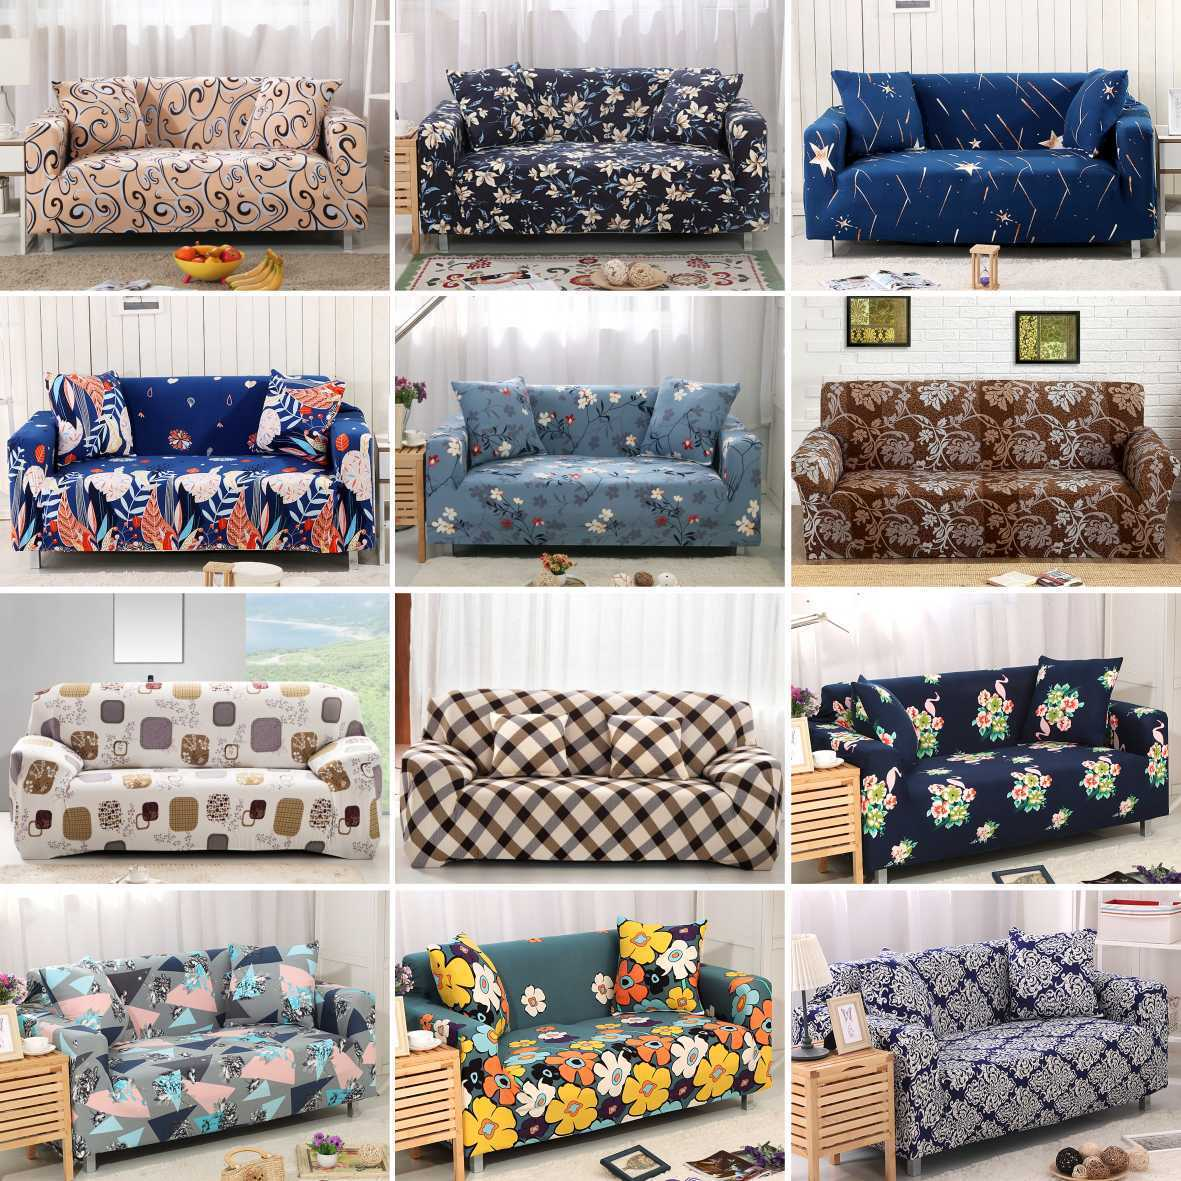 Fantastic Details About 1 2 3 4 Seaters Cover Sofa Stretch Protector Couch Anti Skid Elastic Slipcover Machost Co Dining Chair Design Ideas Machostcouk